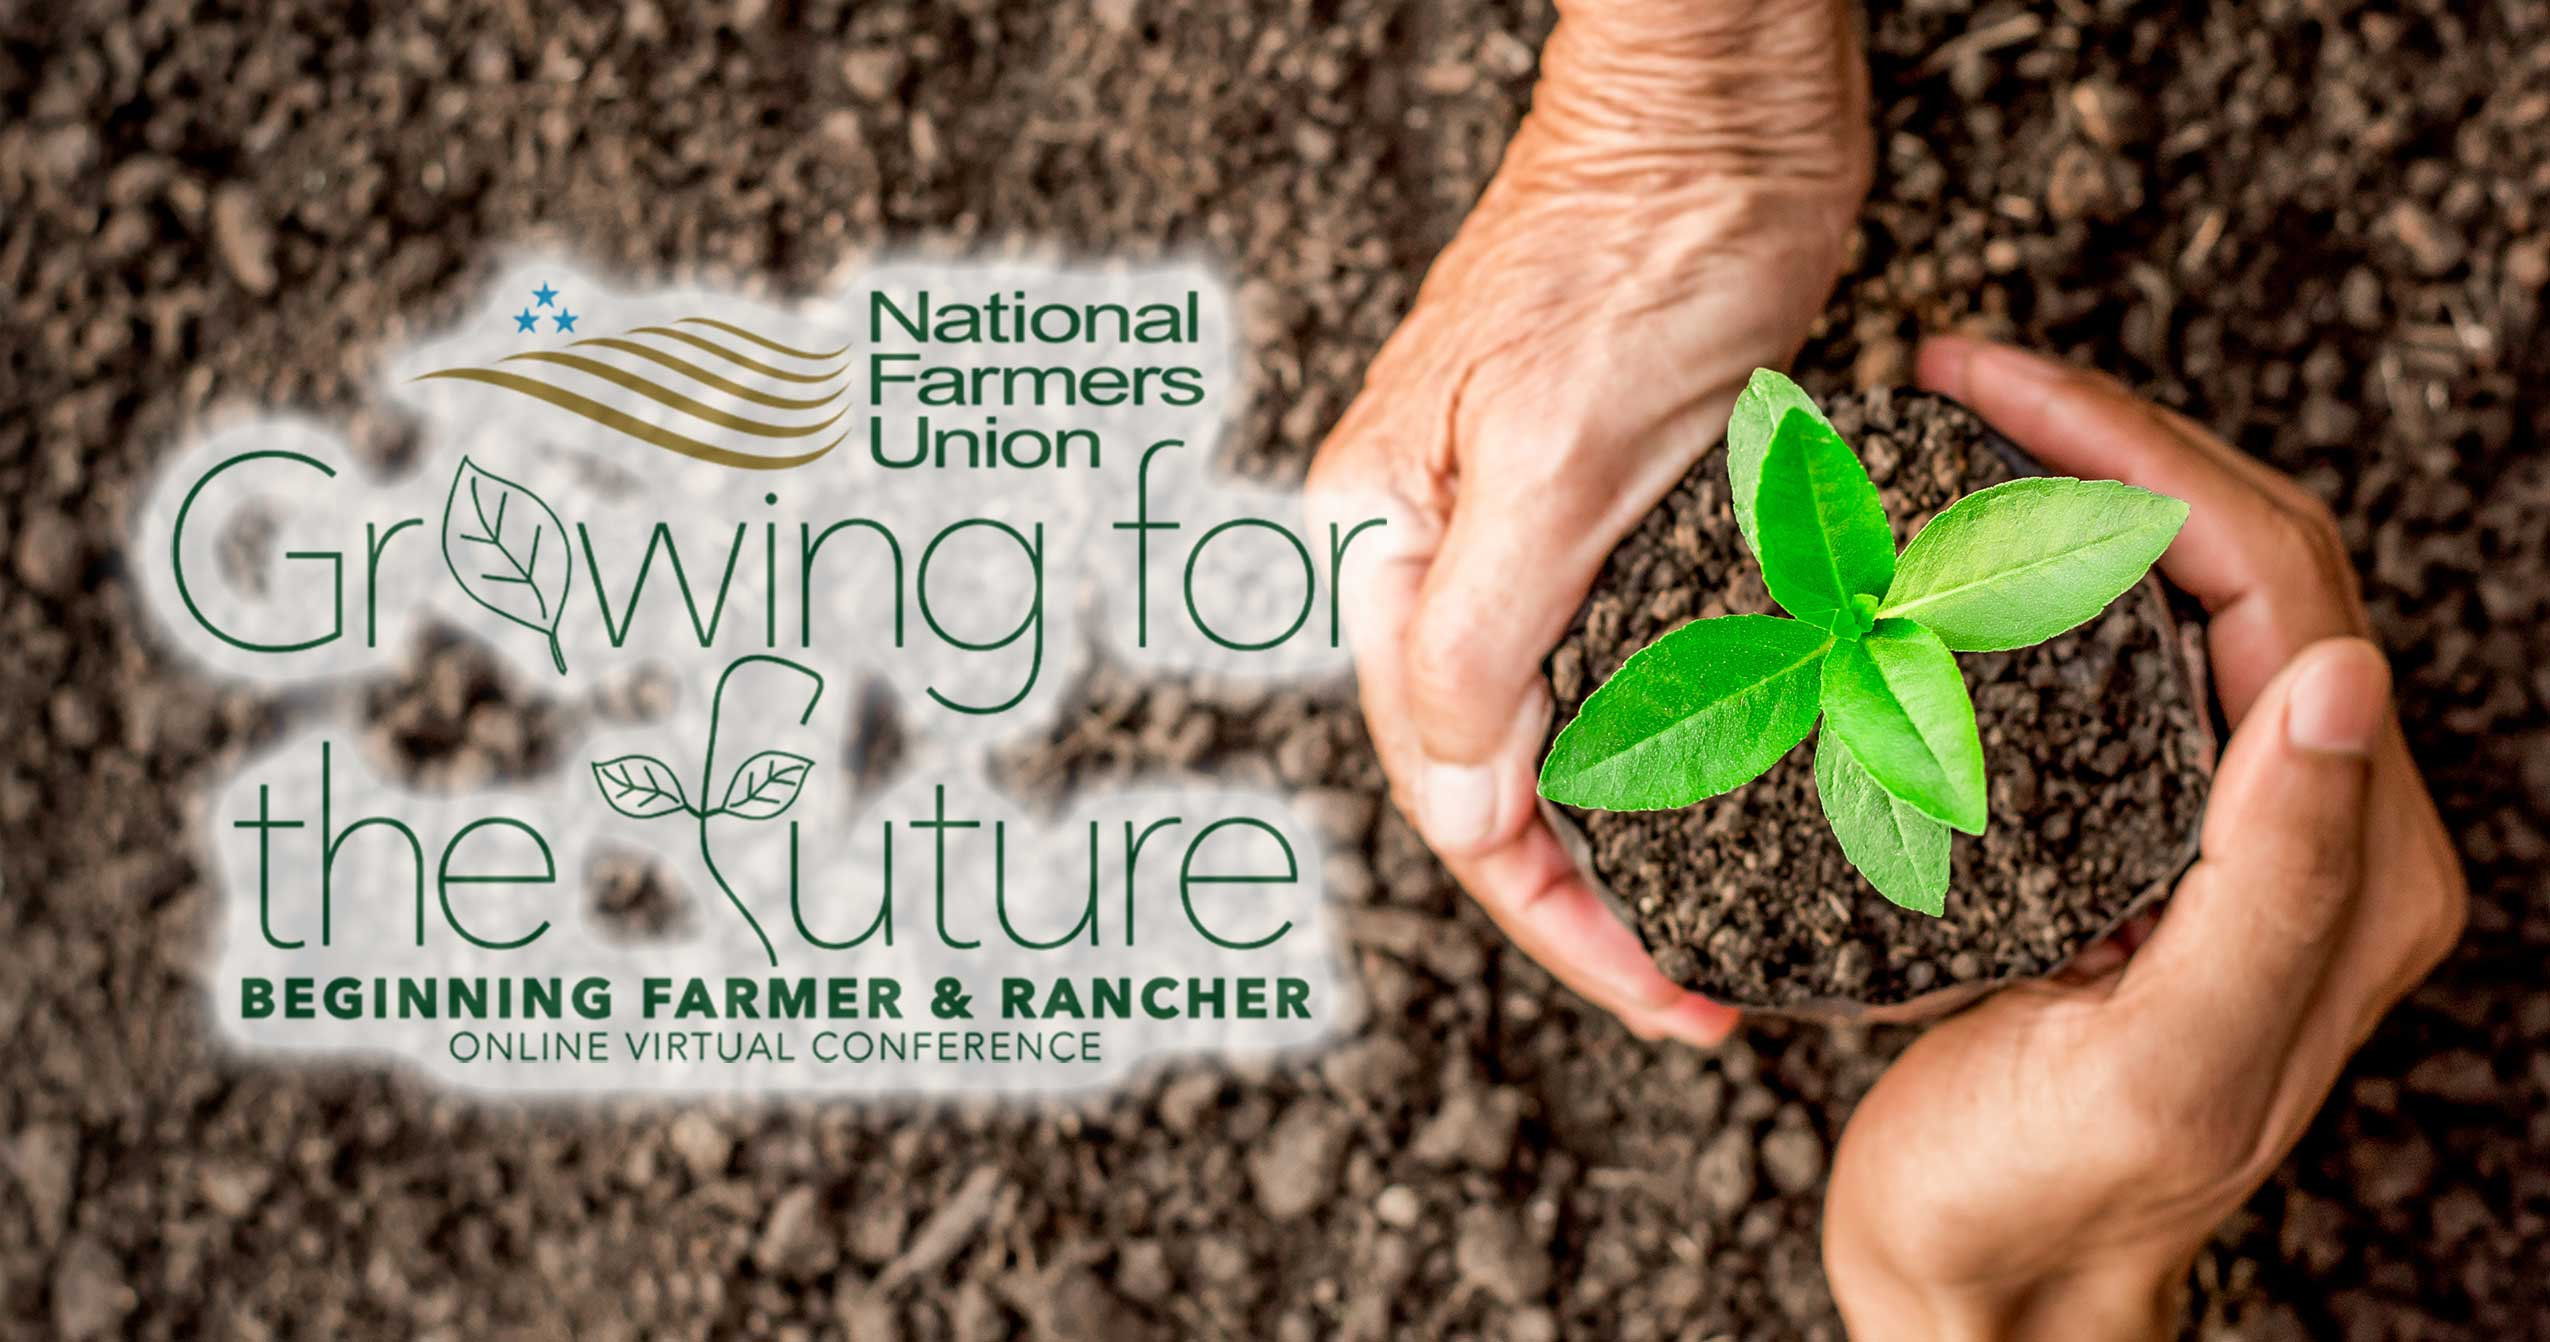 NFU Growing for the Future